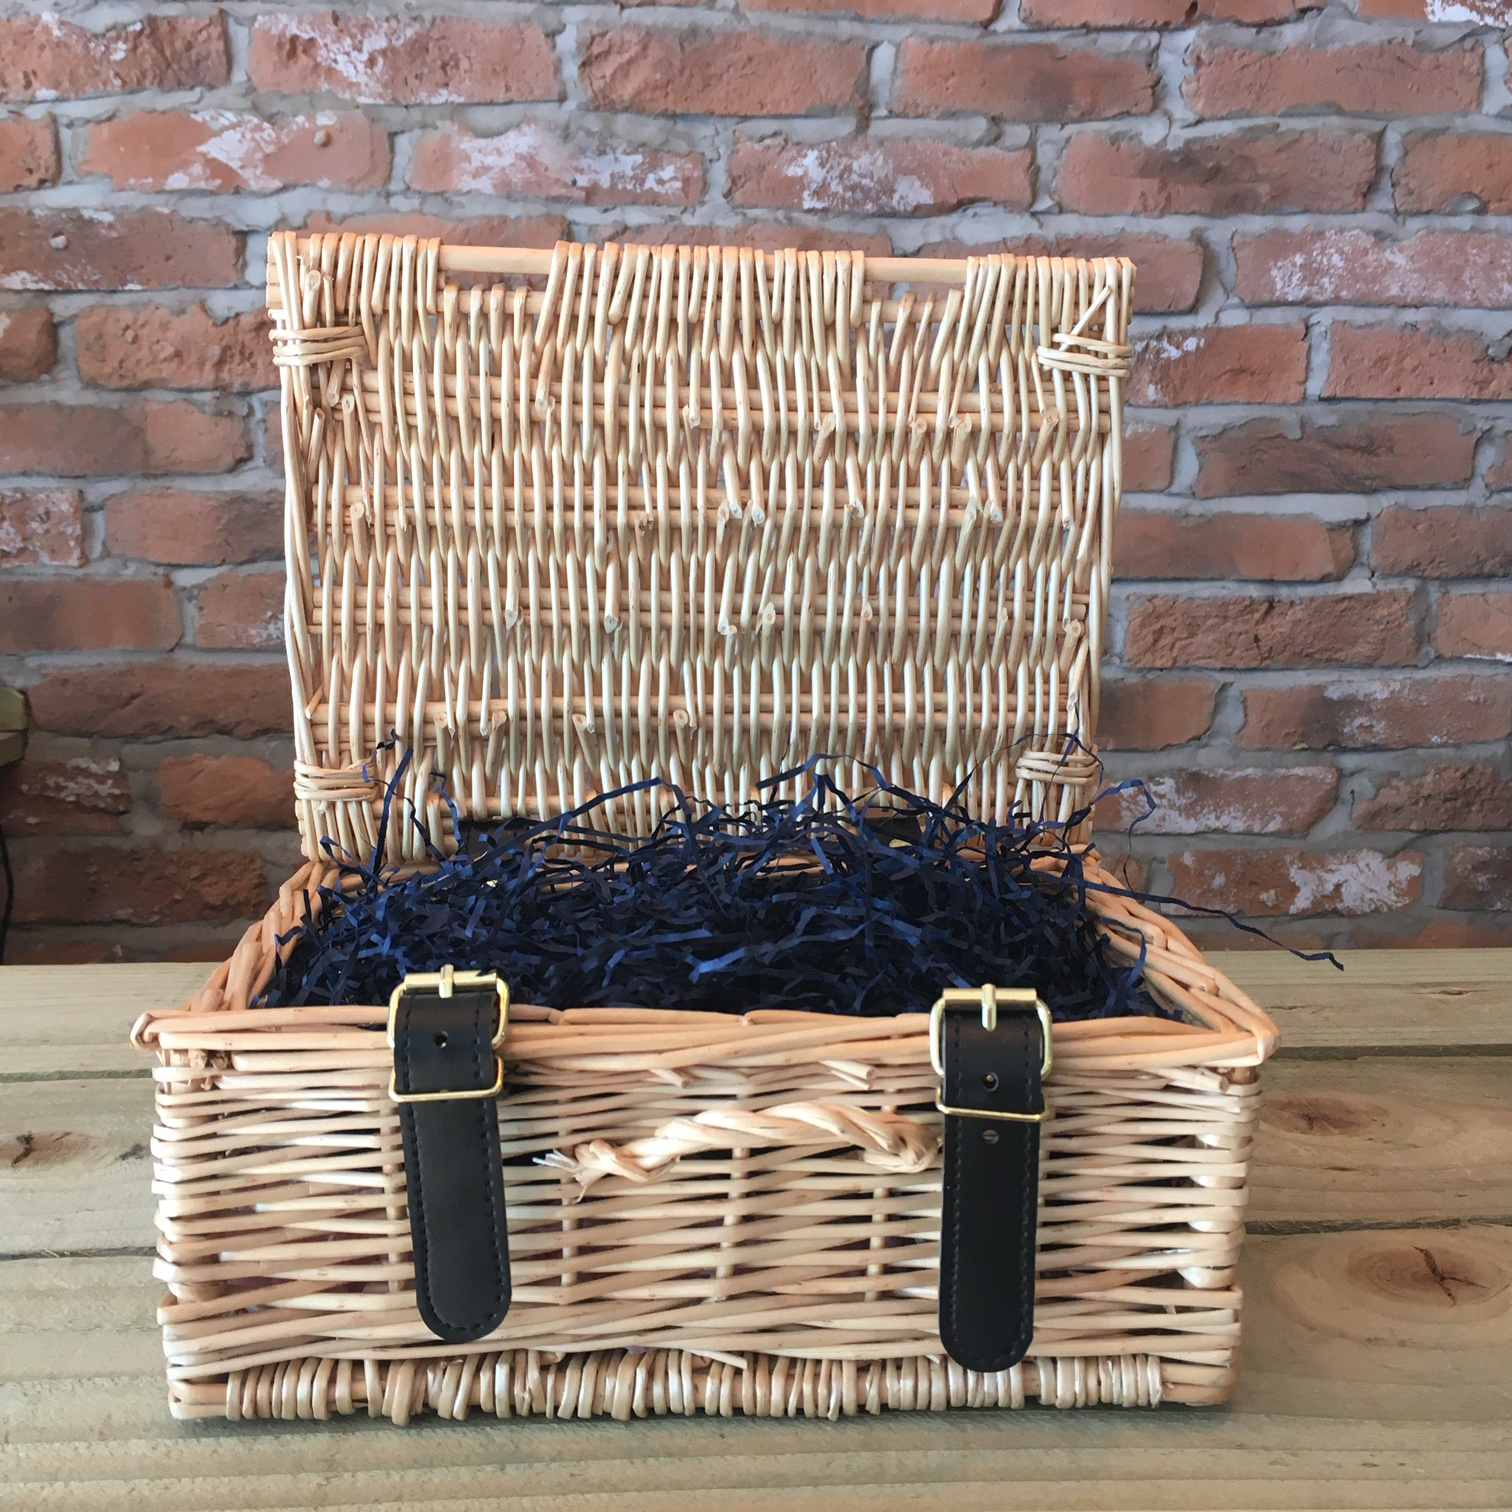 Small Wicker Suitcase - Select and build your own hamper!